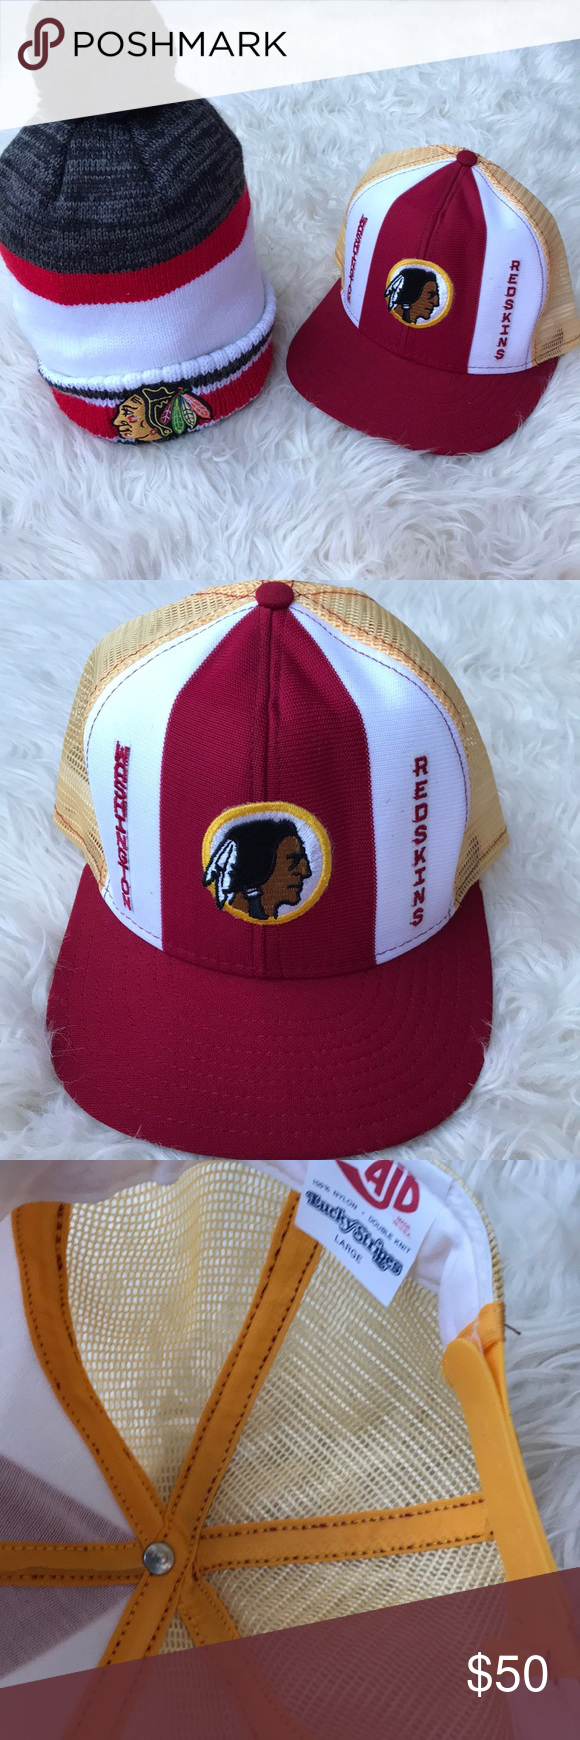 f71040d671f Washington Redskins Hat NHL Reebok Collection Pom You will receive these  two hats The Washington Redskin Material 100% Nylon Size: Large Reebok NHL  Size One ...